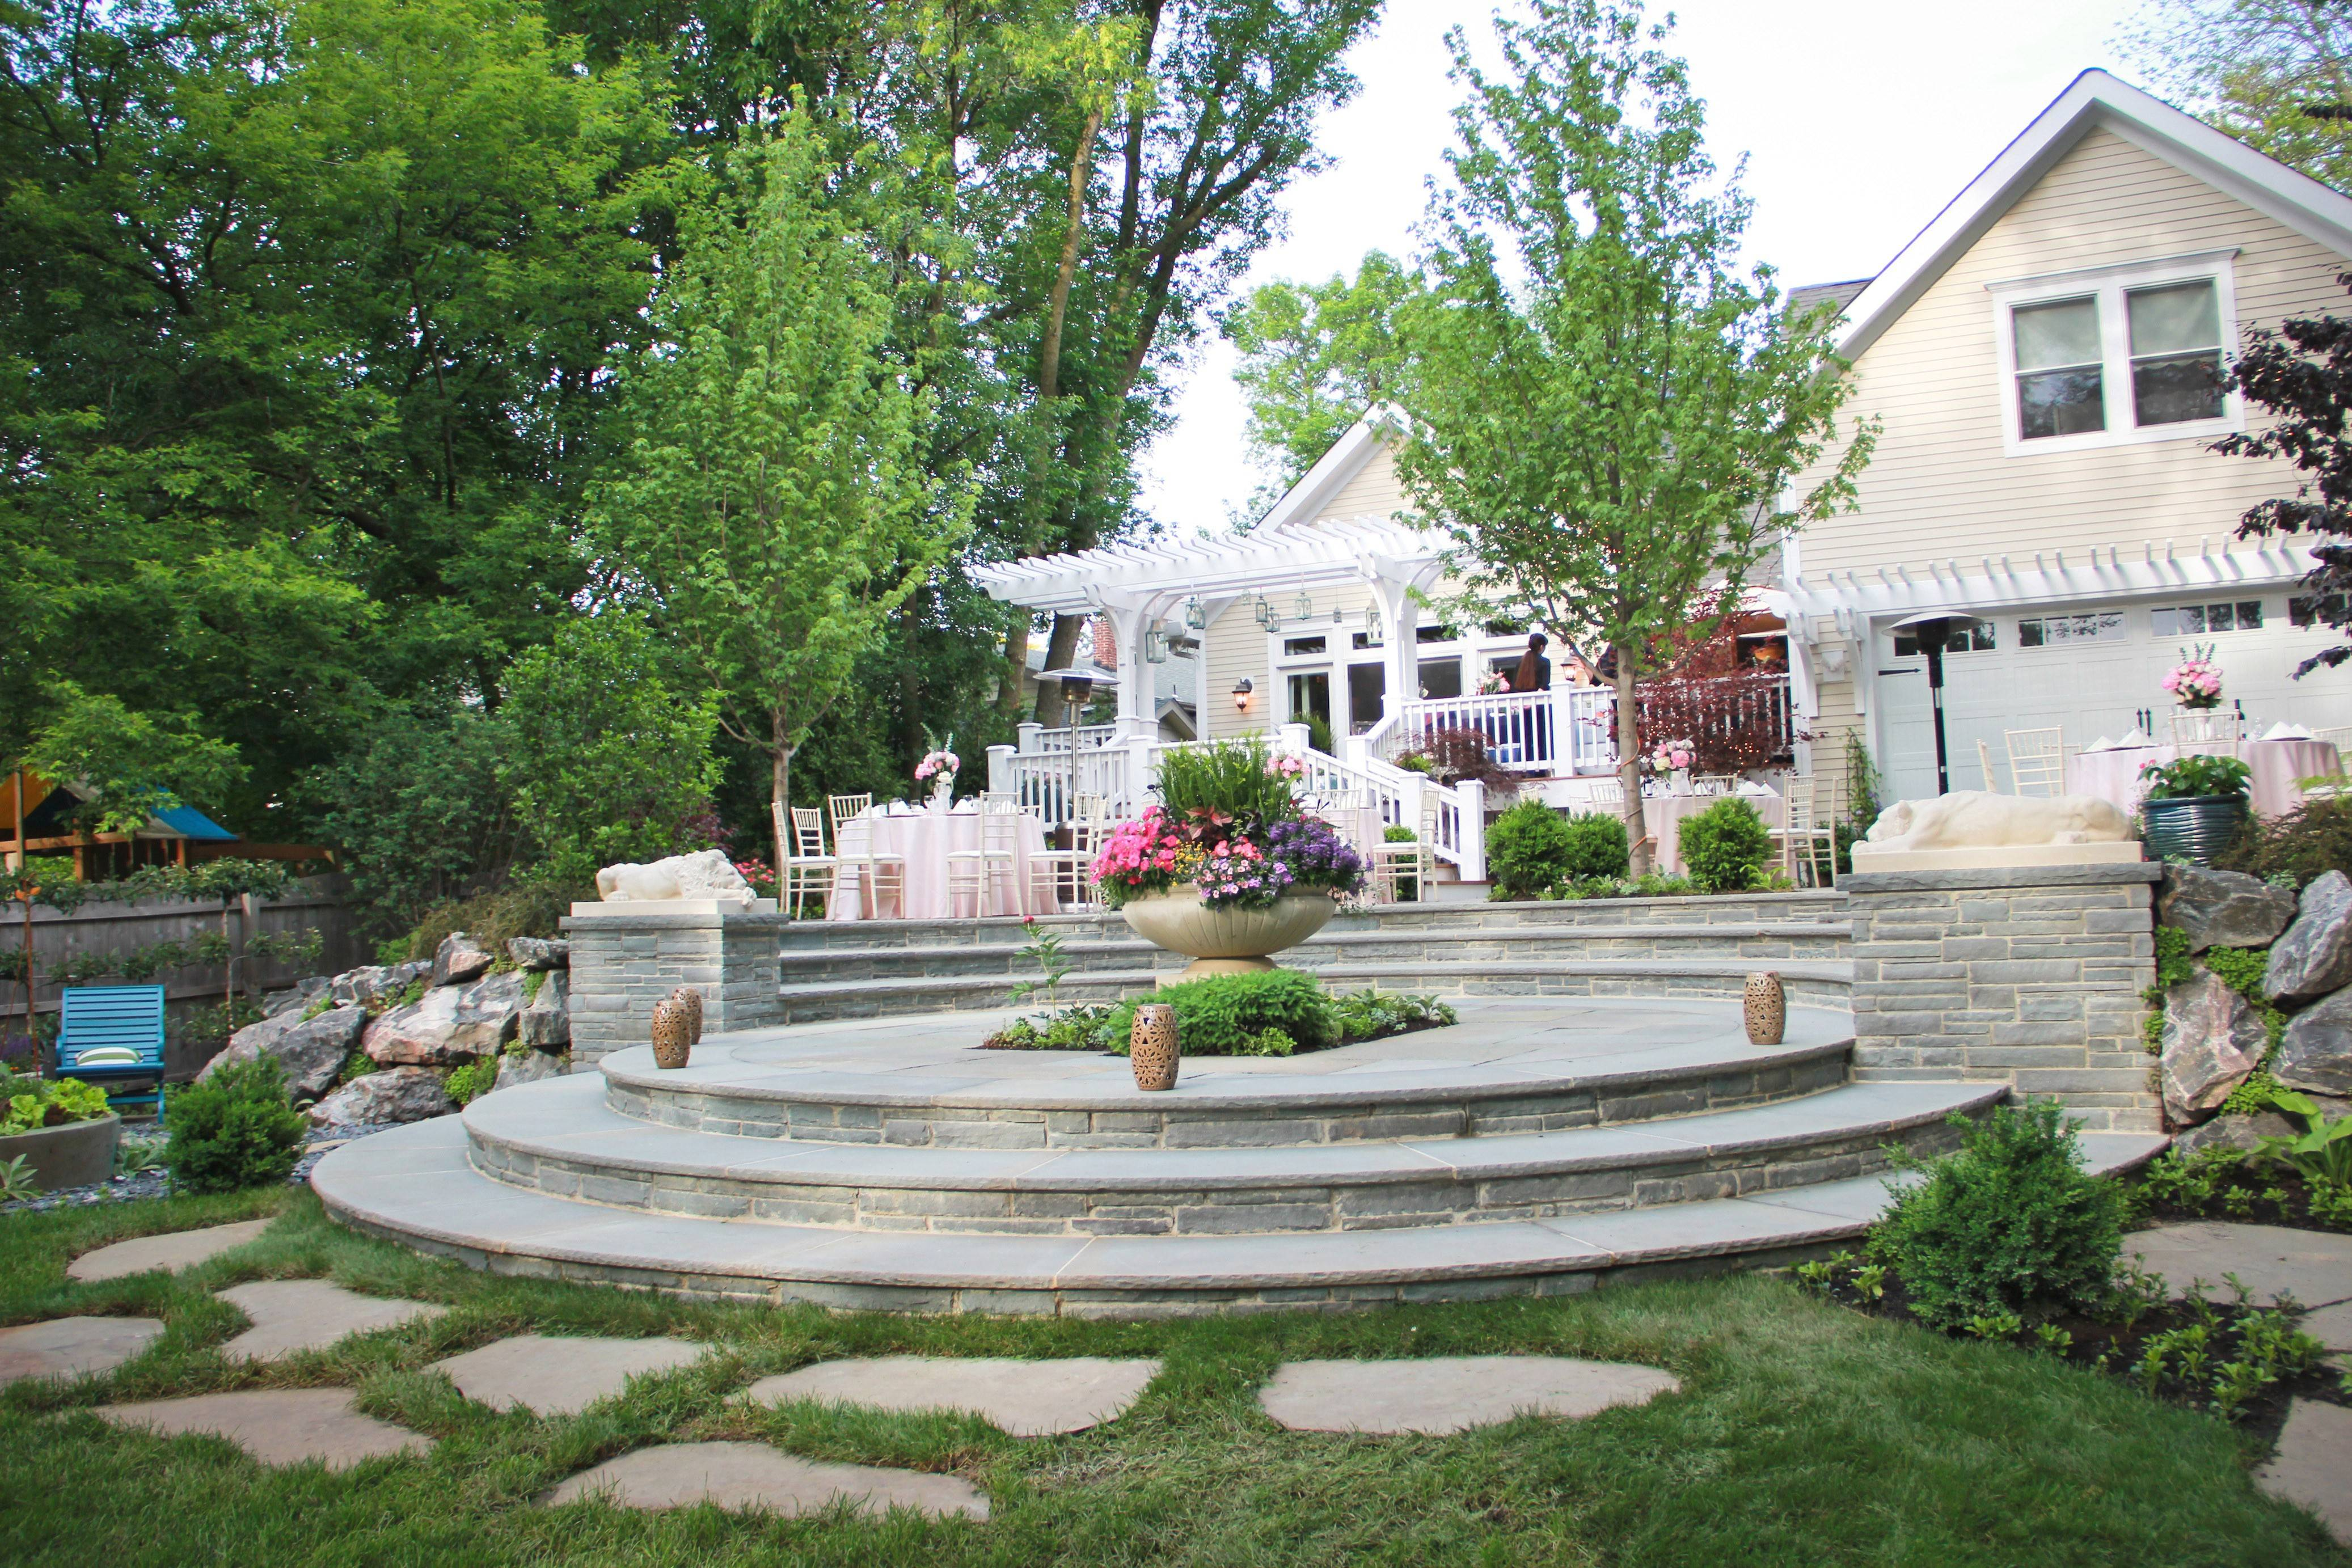 Round is the theme for the landscaping for this foursquare home near downtown Barrington. The circular terrace makes a great conversation area and the design links the home and the landscape.